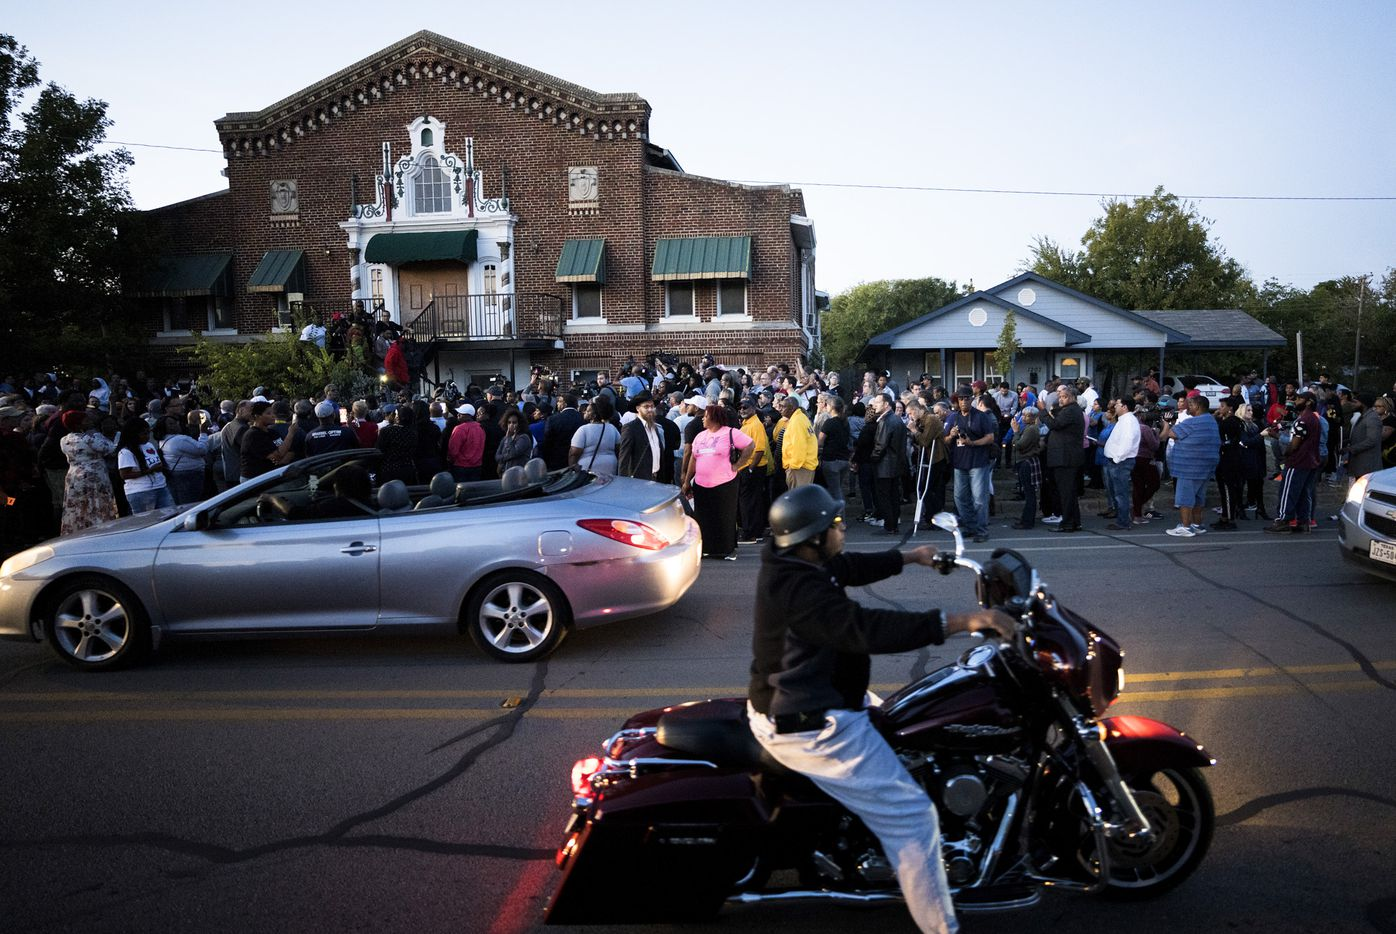 A large crowd of protestors gathers outside the house (right) where Atatiana Jefferson was shot and killed, during a community vigil for Jefferson on Sunday, Oct. 13, 2019, in Fort Worth.